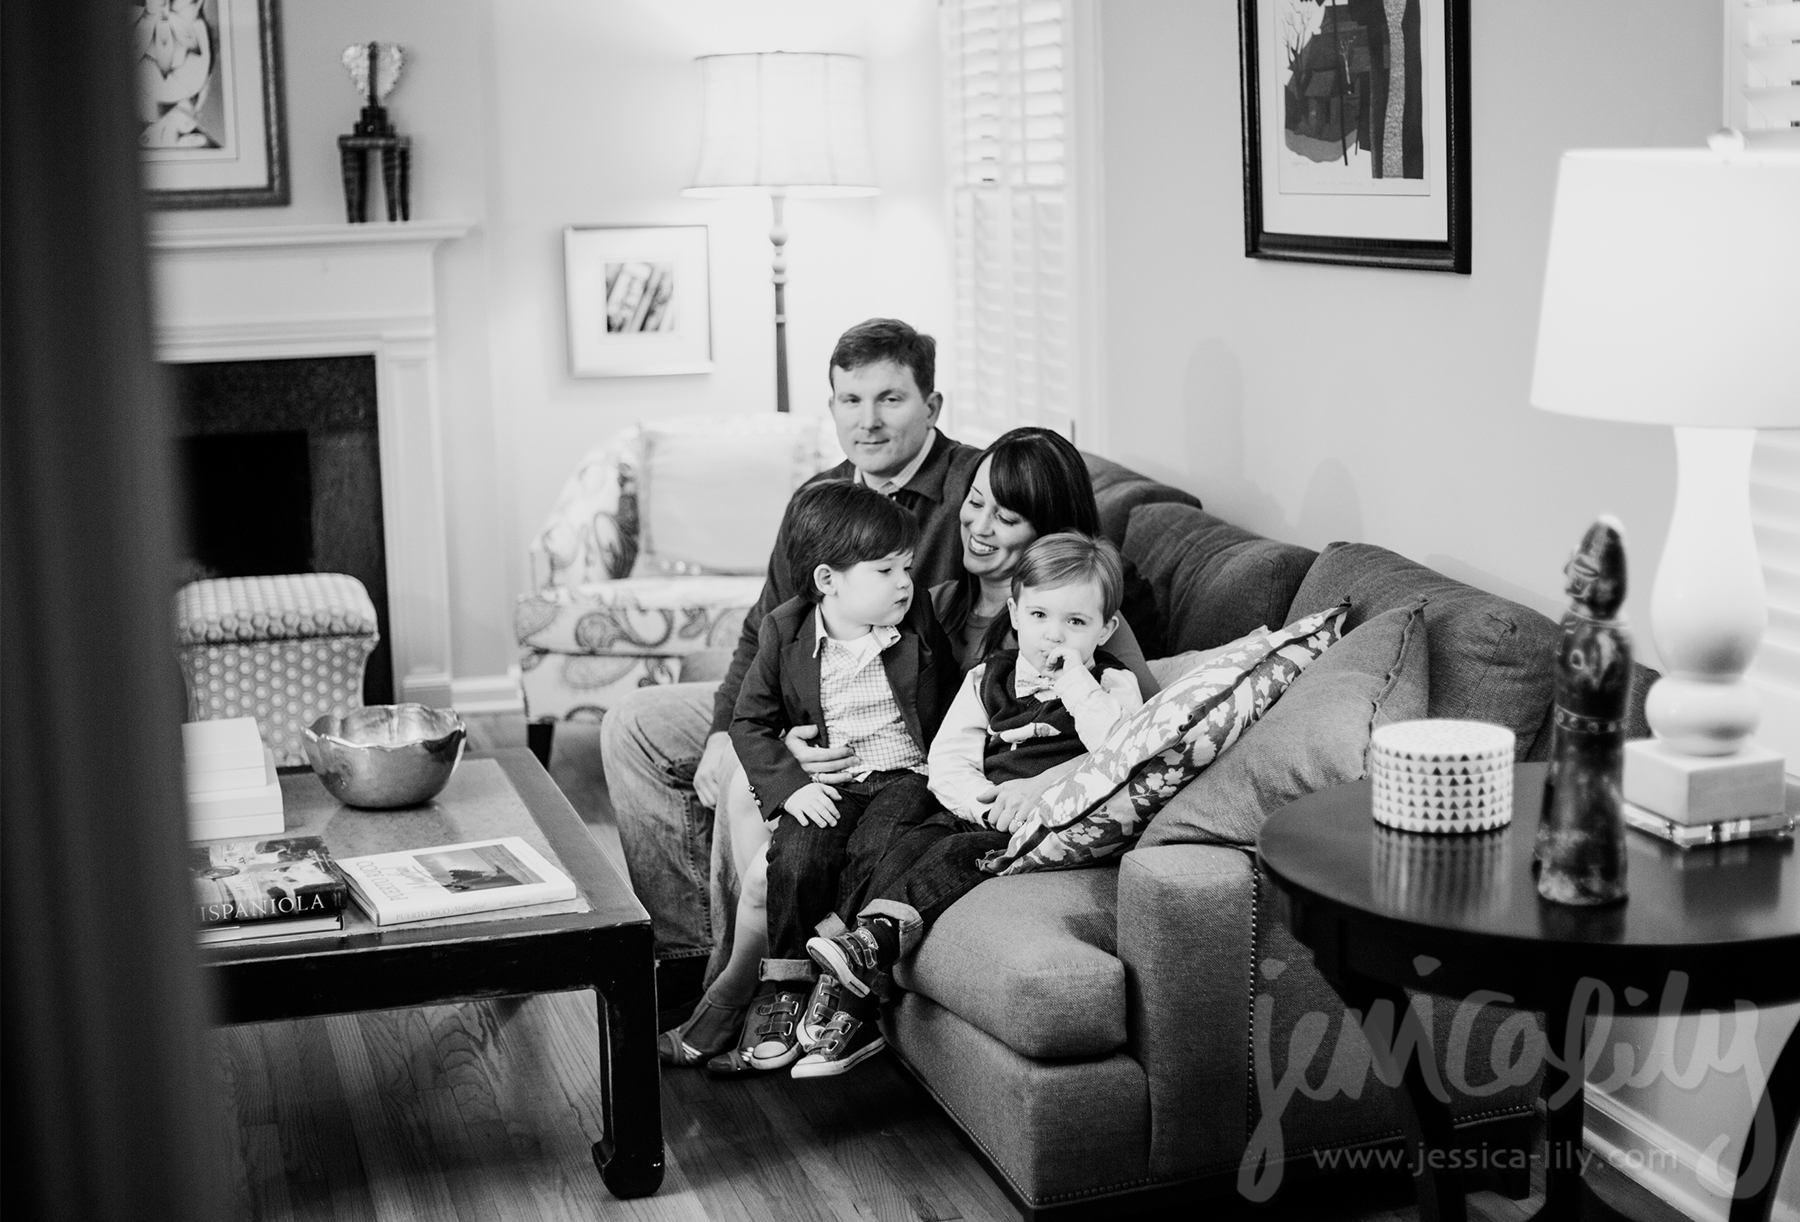 Atlanta Kids Photography Family Portraits With Jessica Lily - 10 portrait photos of people before after the photographer kissed them